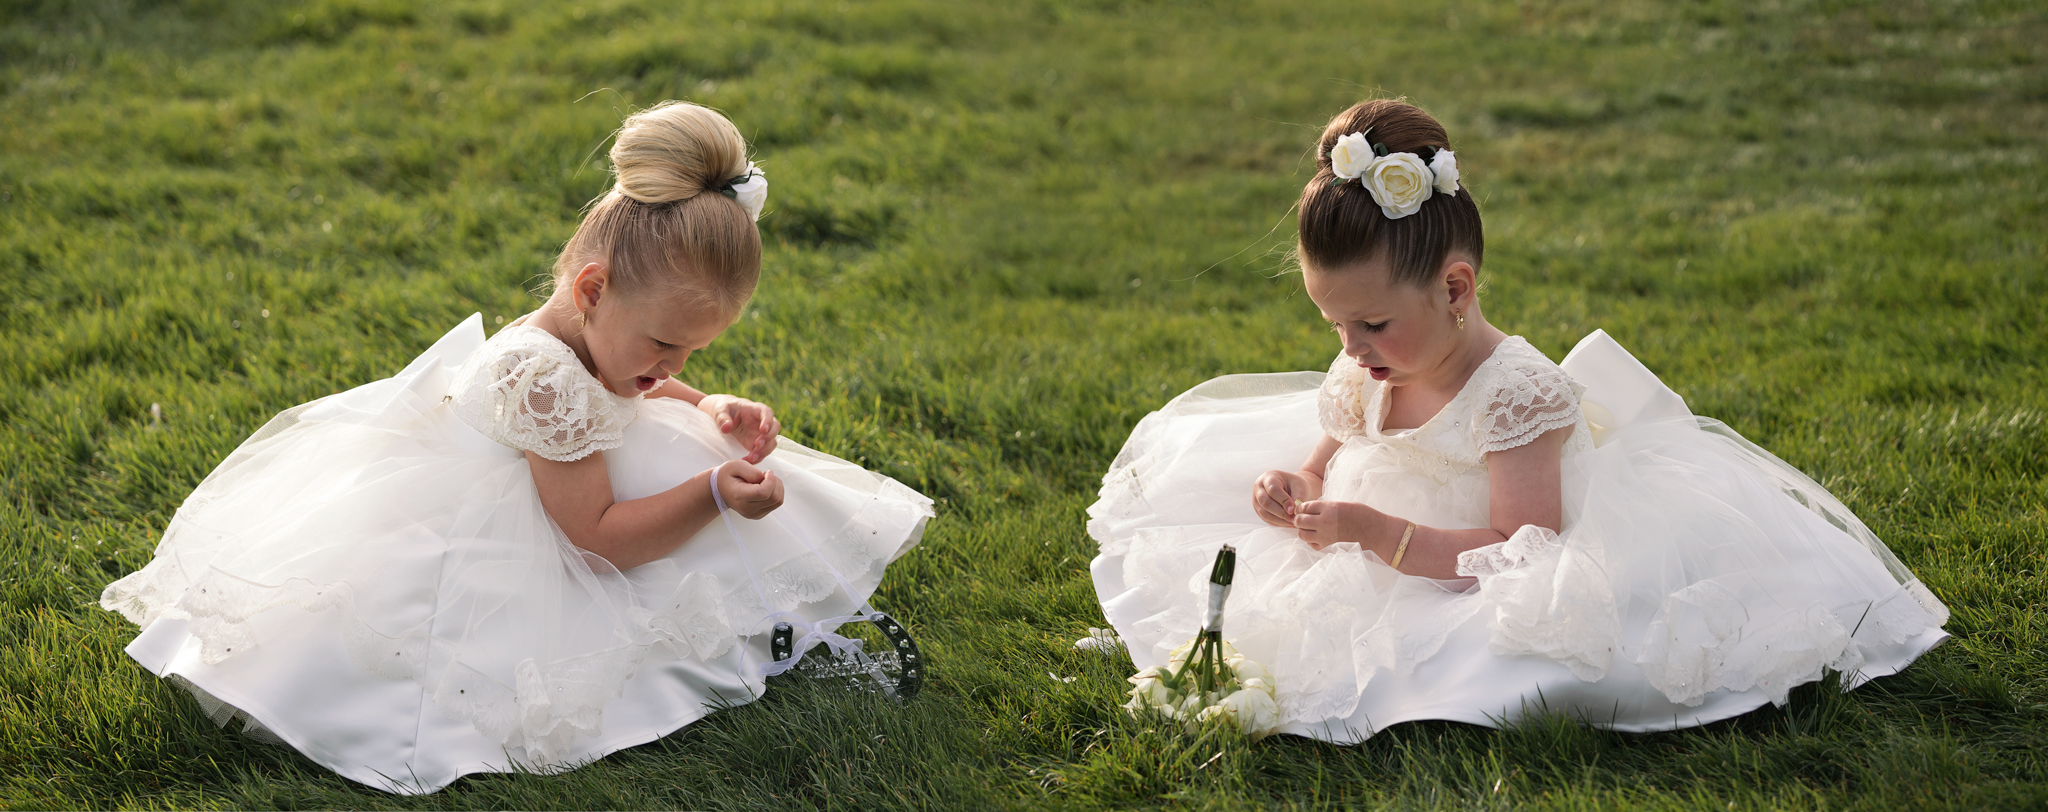 Two little flower girls resting